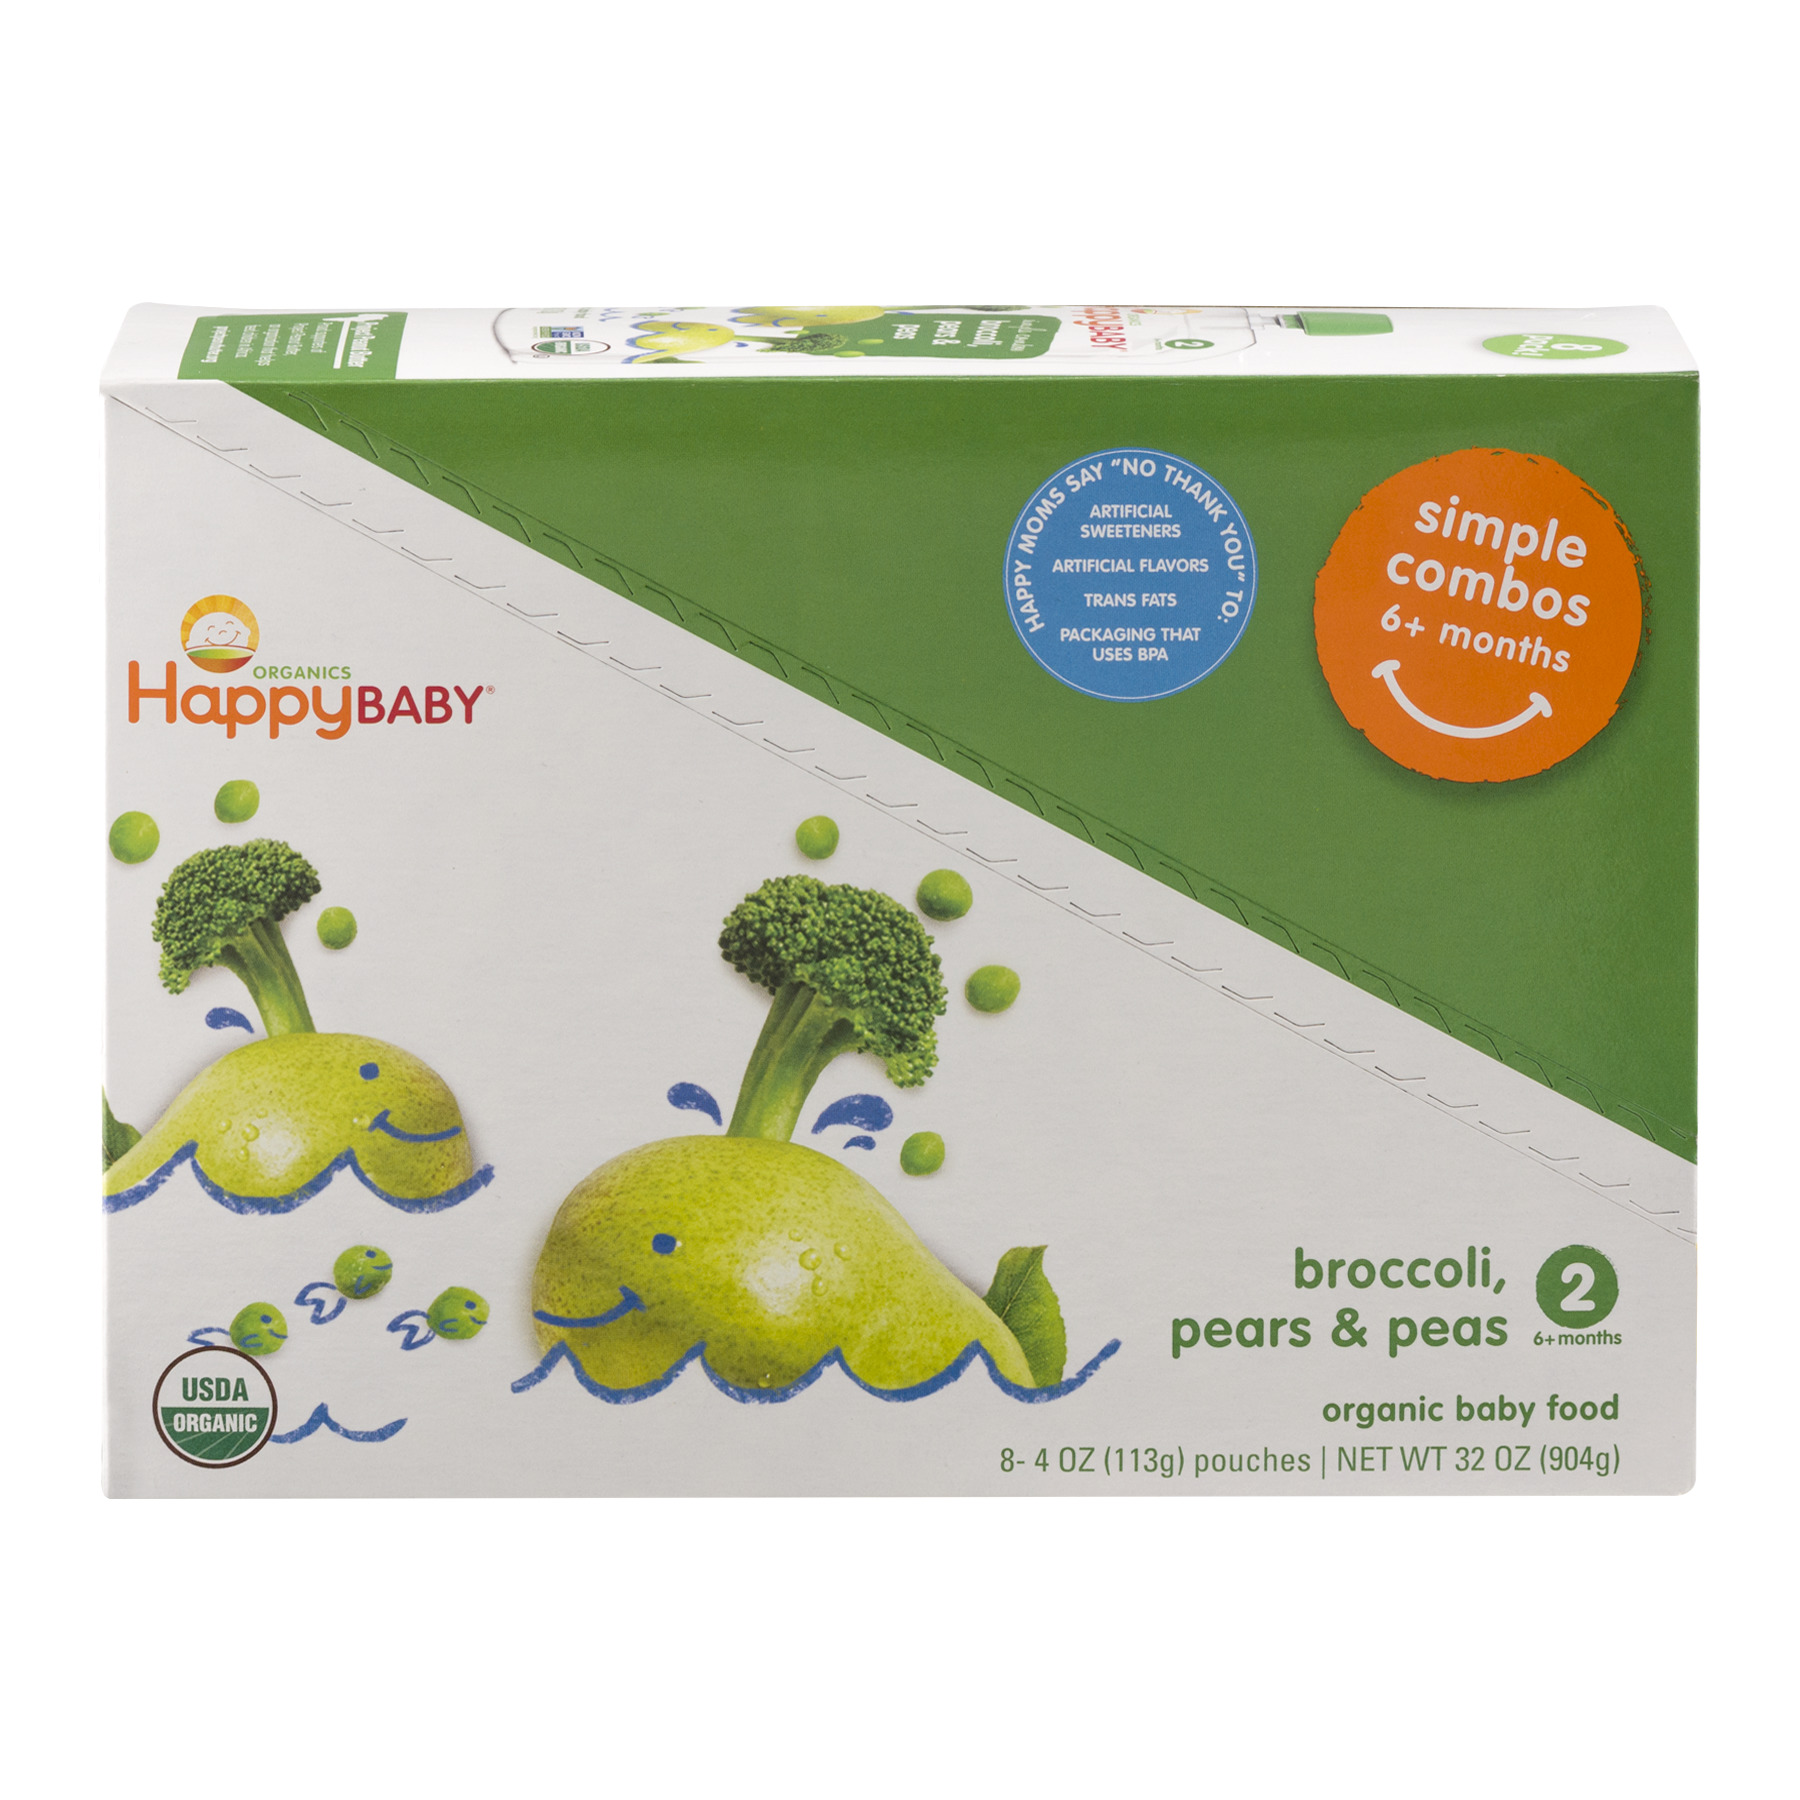 Happy Baby Simple Combos, Stage 2, Organic Baby Food, Pears, Peas & Broccoli - 4 oz